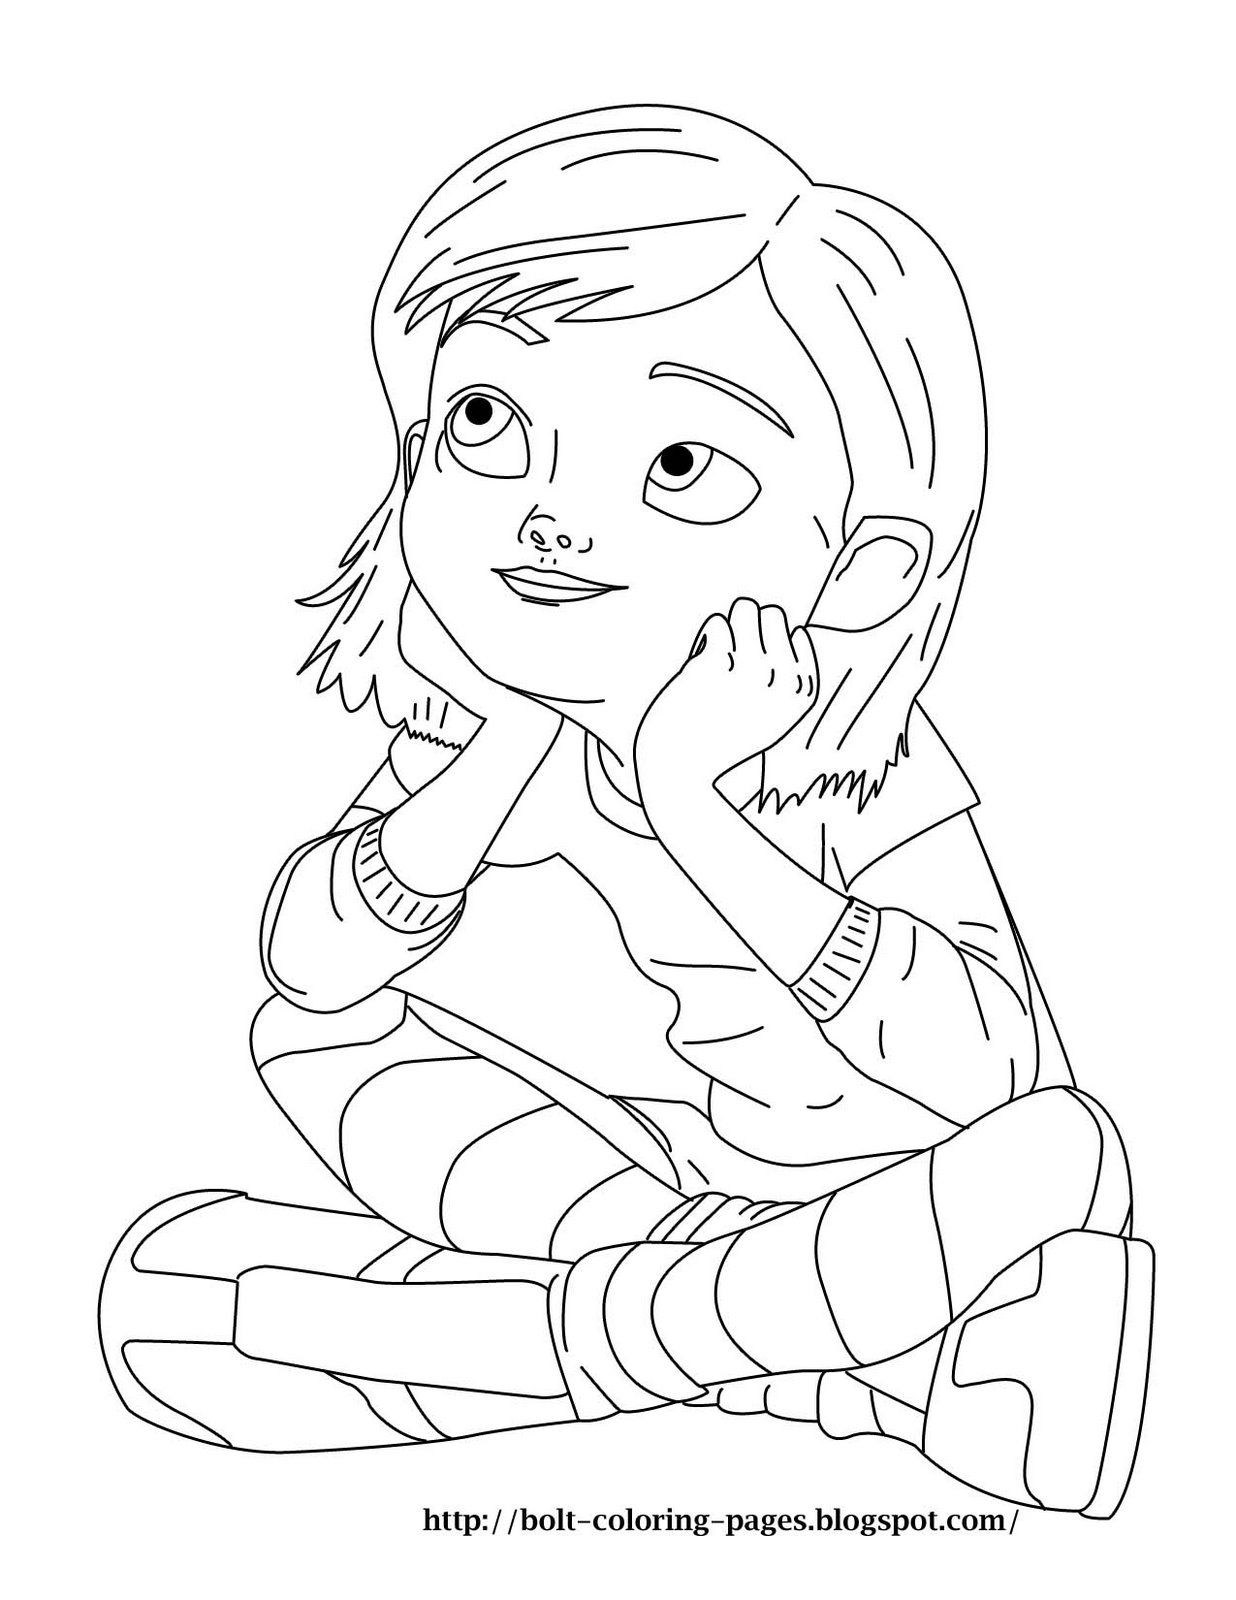 Bolt Coloring Pages Nemo Coloring Pages Disney Coloring Pages